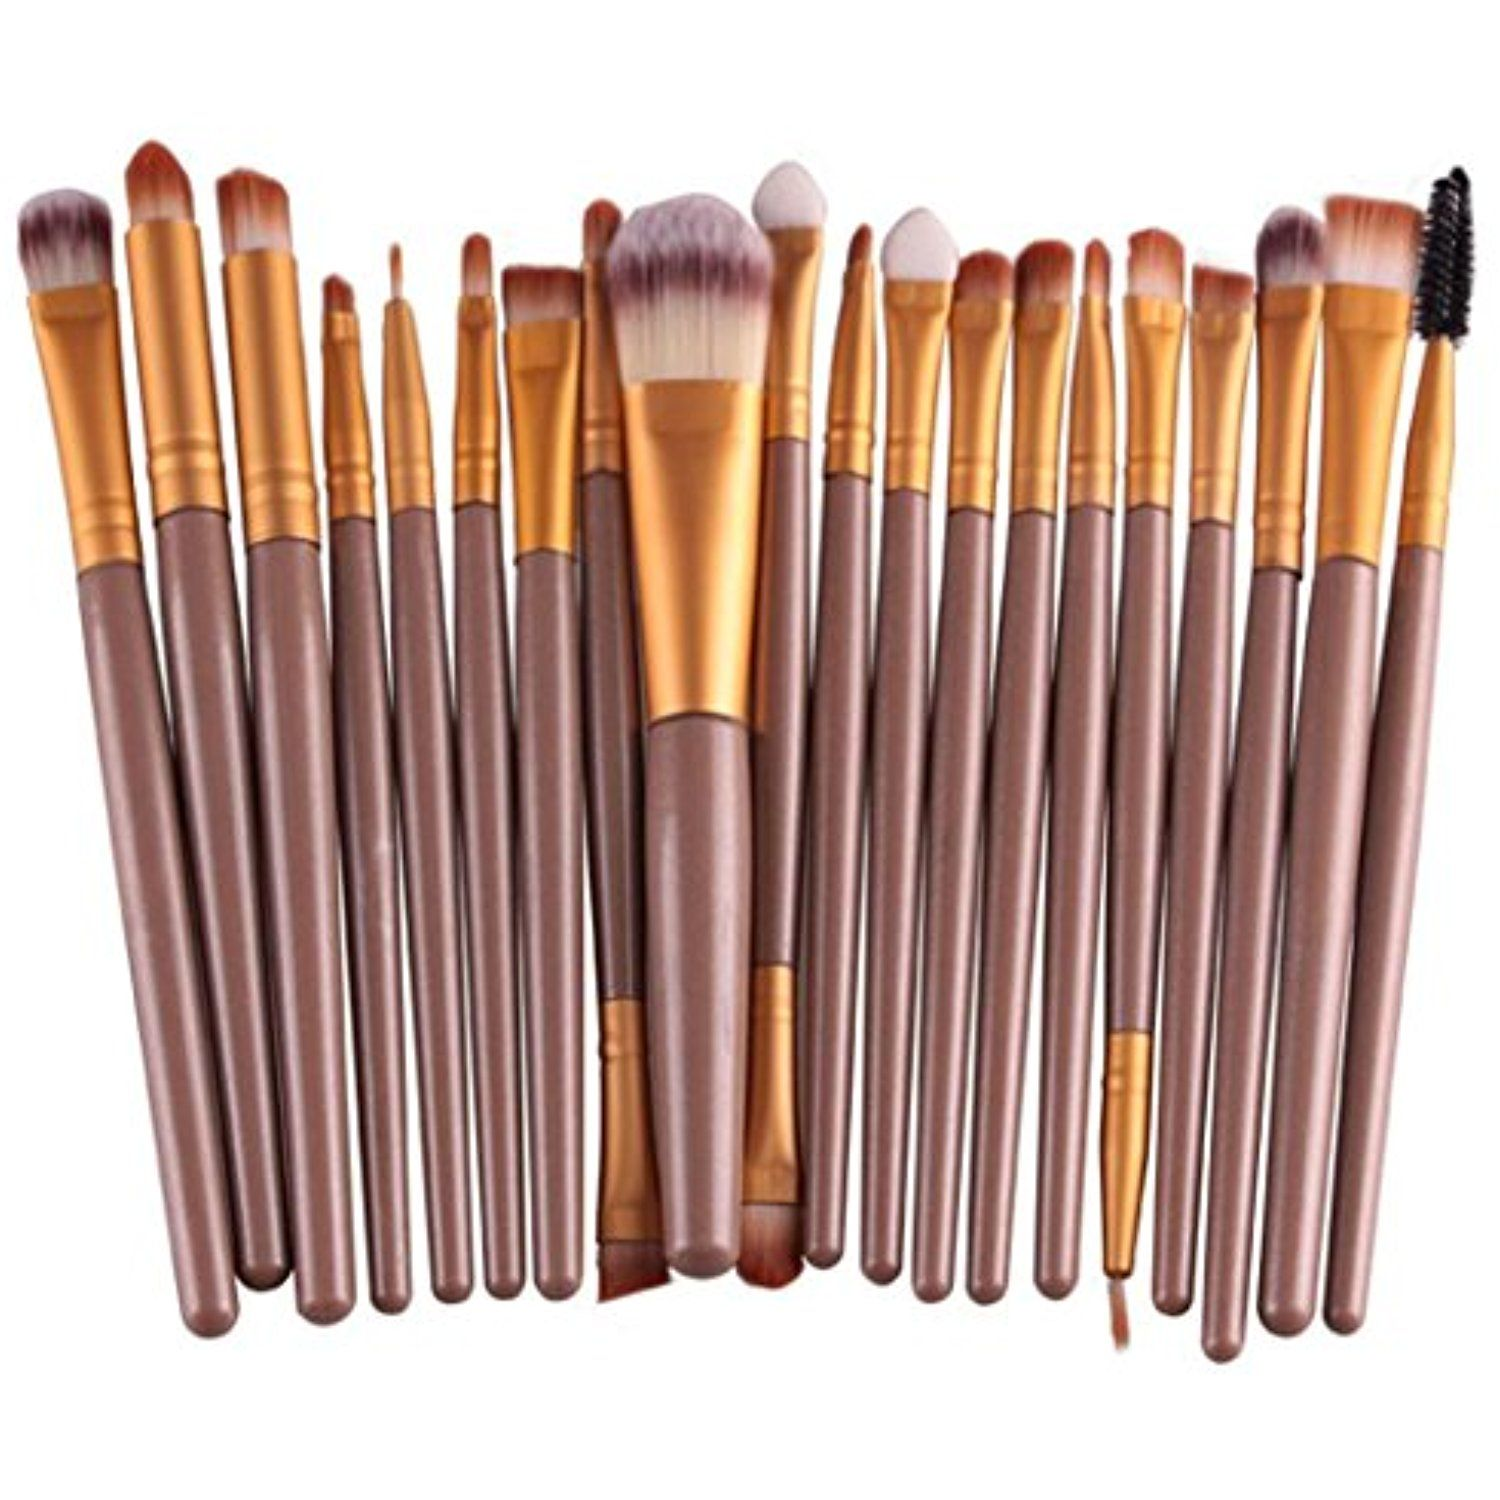 Cleaning Tools Bessky 20 pcs/set Makeup Brush Set tools Wool Make Up Brush Set Make-up Toiletry Kit Health & Personal Care